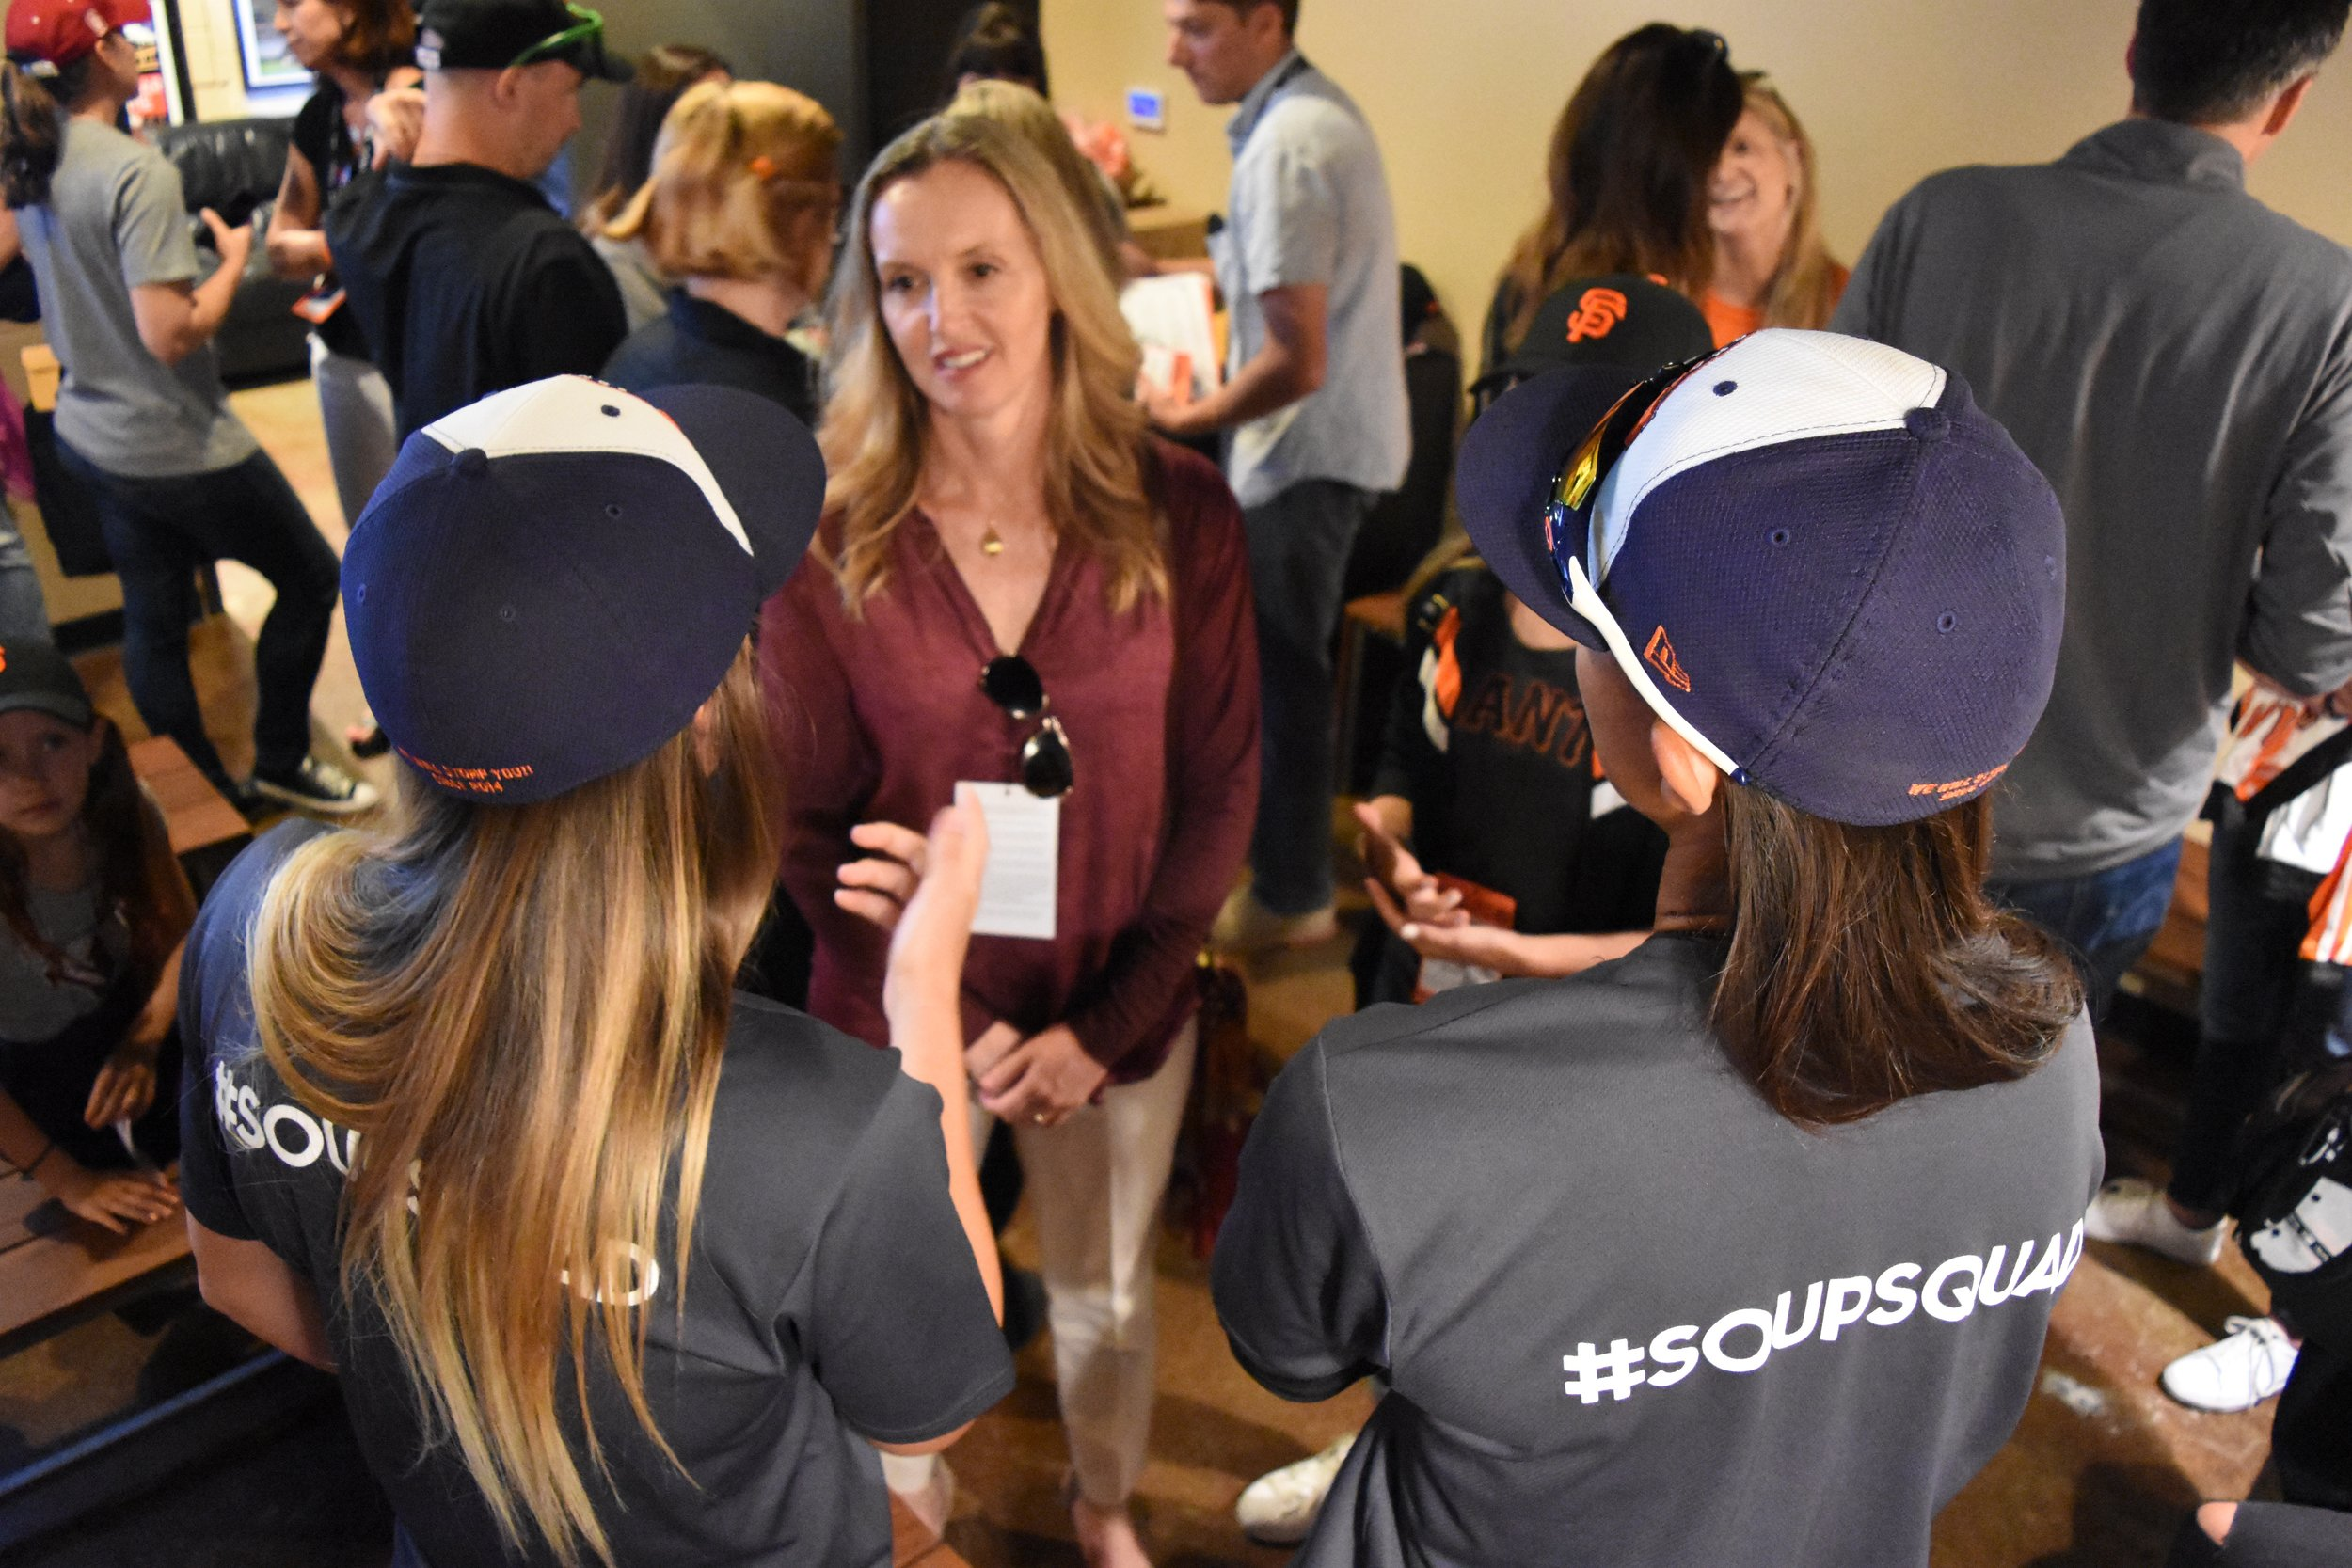 Stacy Piagno (left) and Kelsie Whitmore (right) chat with Julie Croteau, the first woman to play men's NCAA baseball, at AT&T Park on Sunday. (James W. Toy III / Sonoma Stompers)